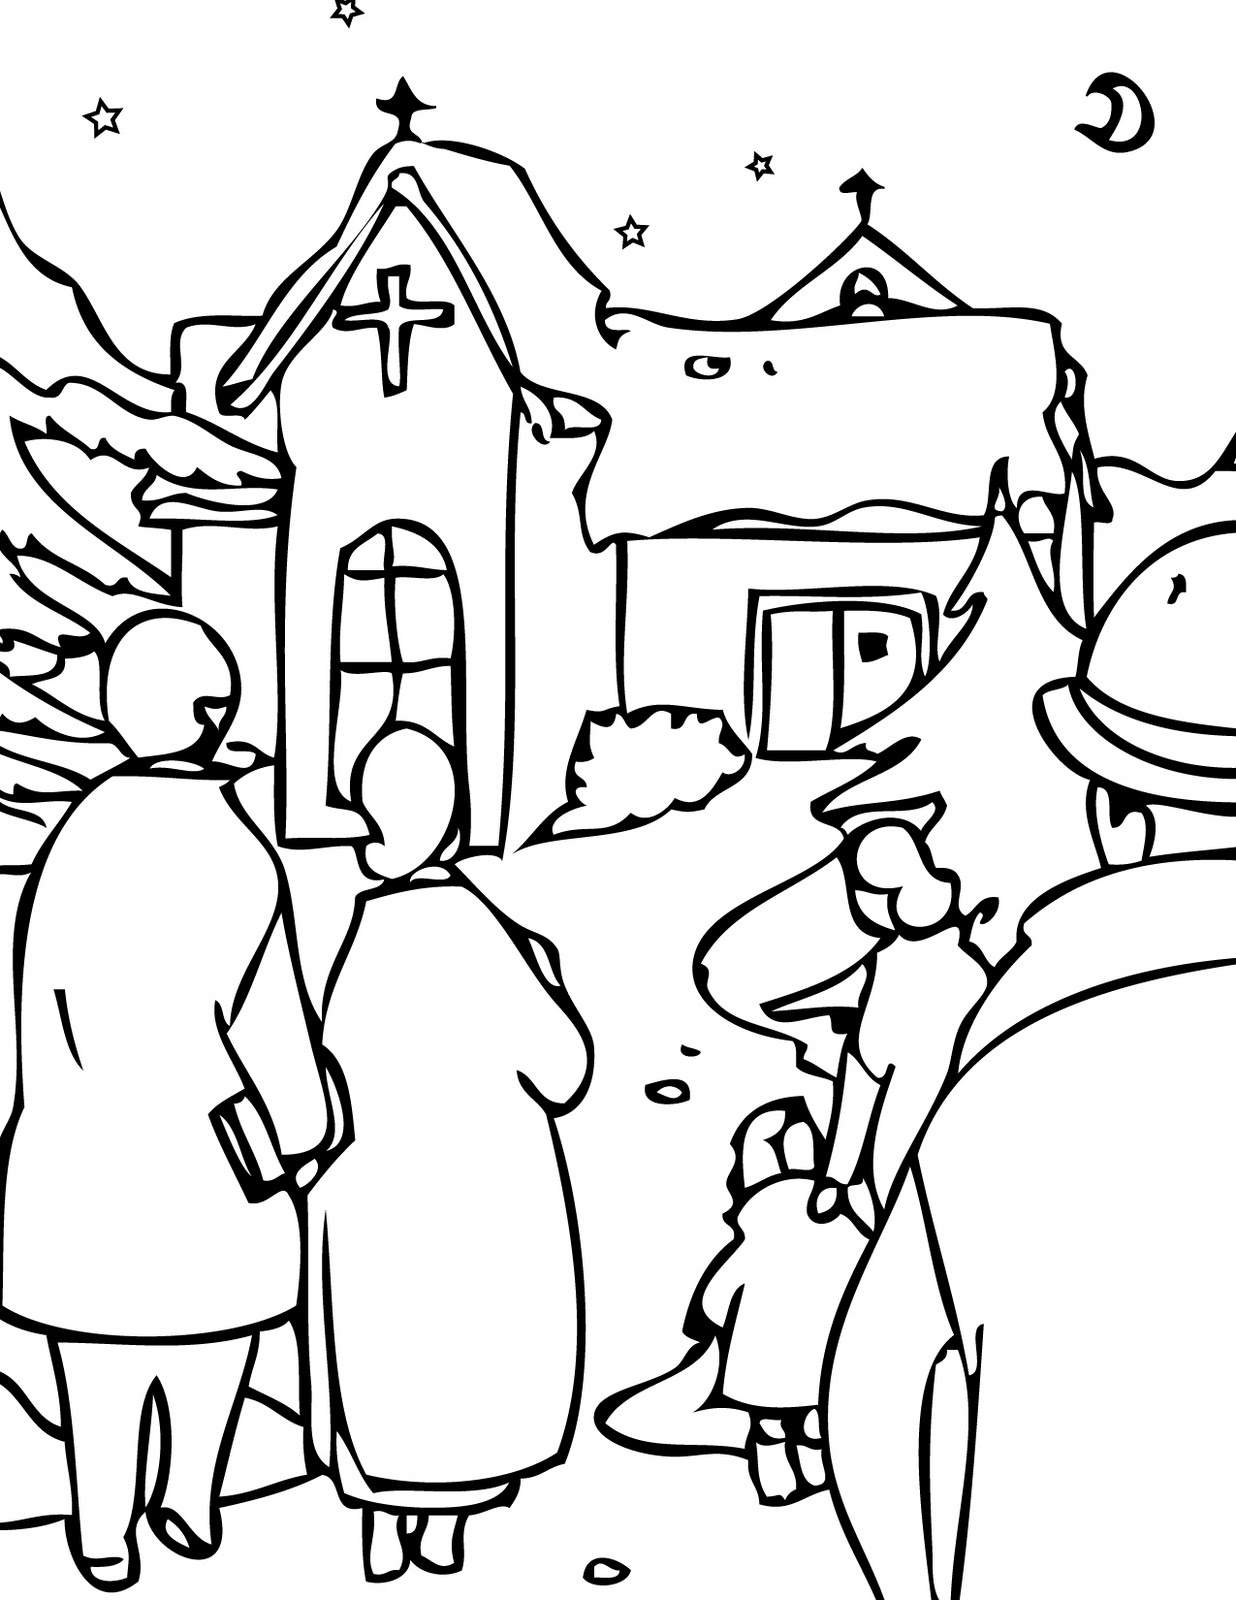 free holiday coloring pages christmas eve coloring pages learn to coloring coloring holiday pages free